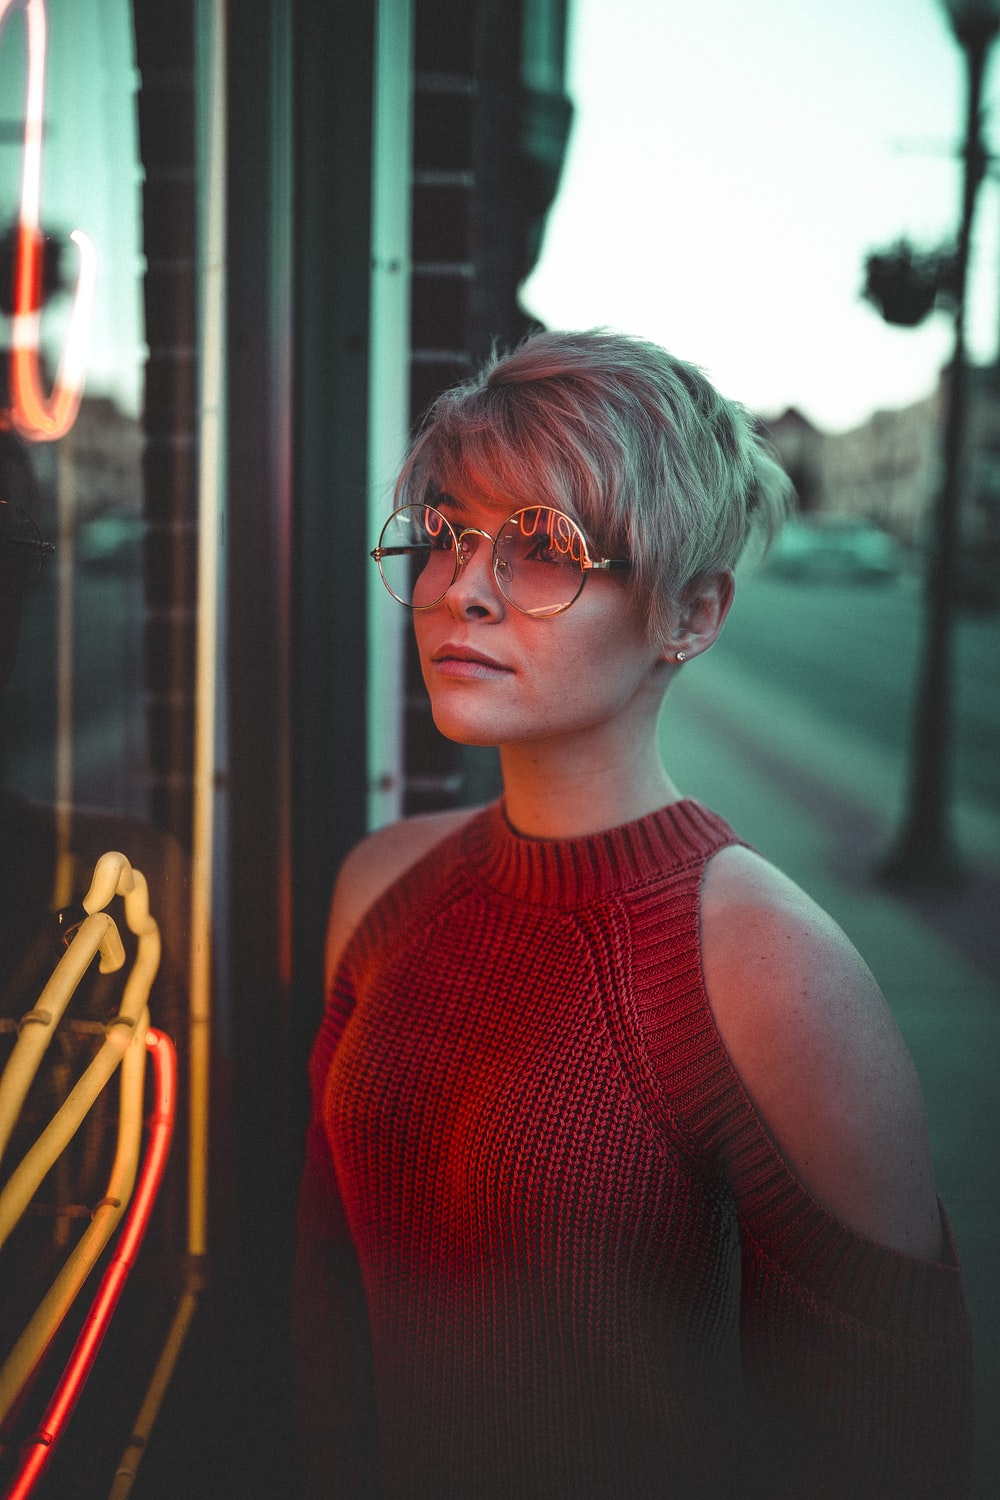 woman with eyeglasses looking at glass panel with neon signage